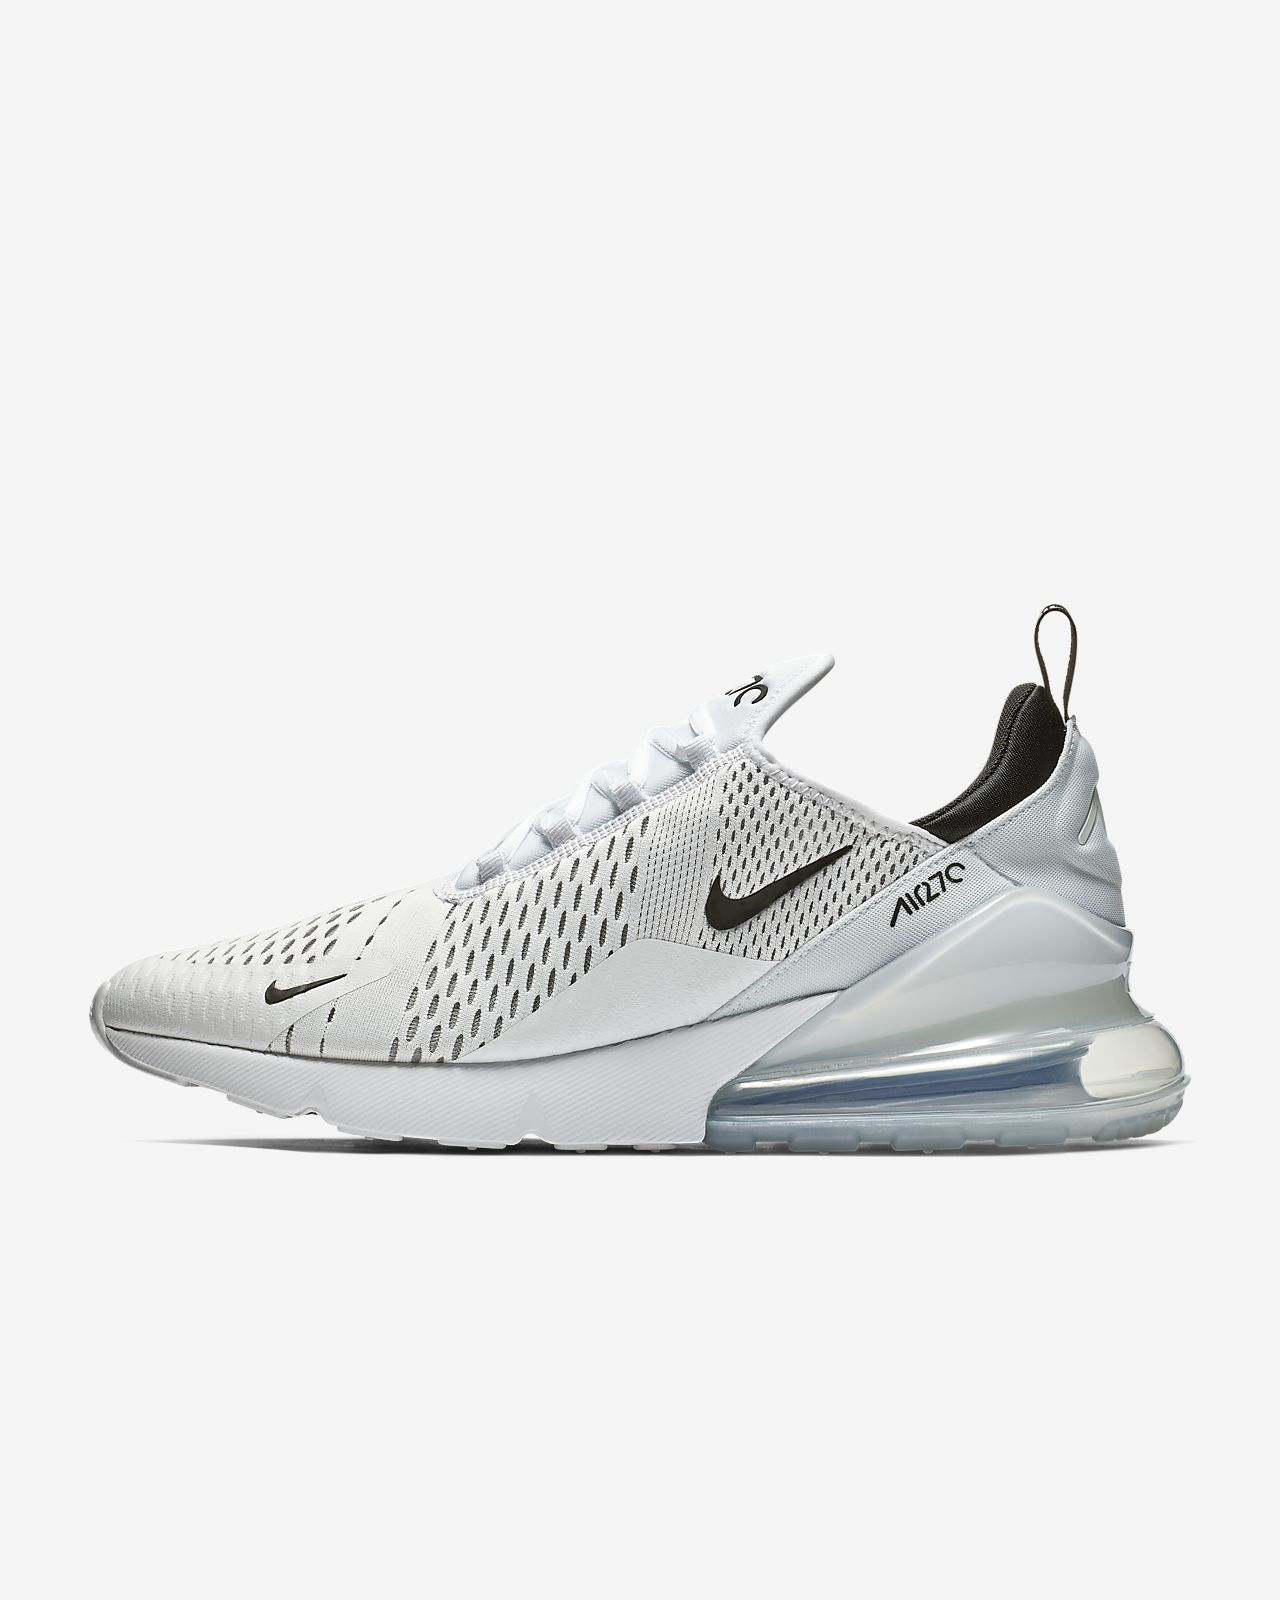 8d364dfd5820 Nike Air Max 270 Men s Shoe. Nike.com LU